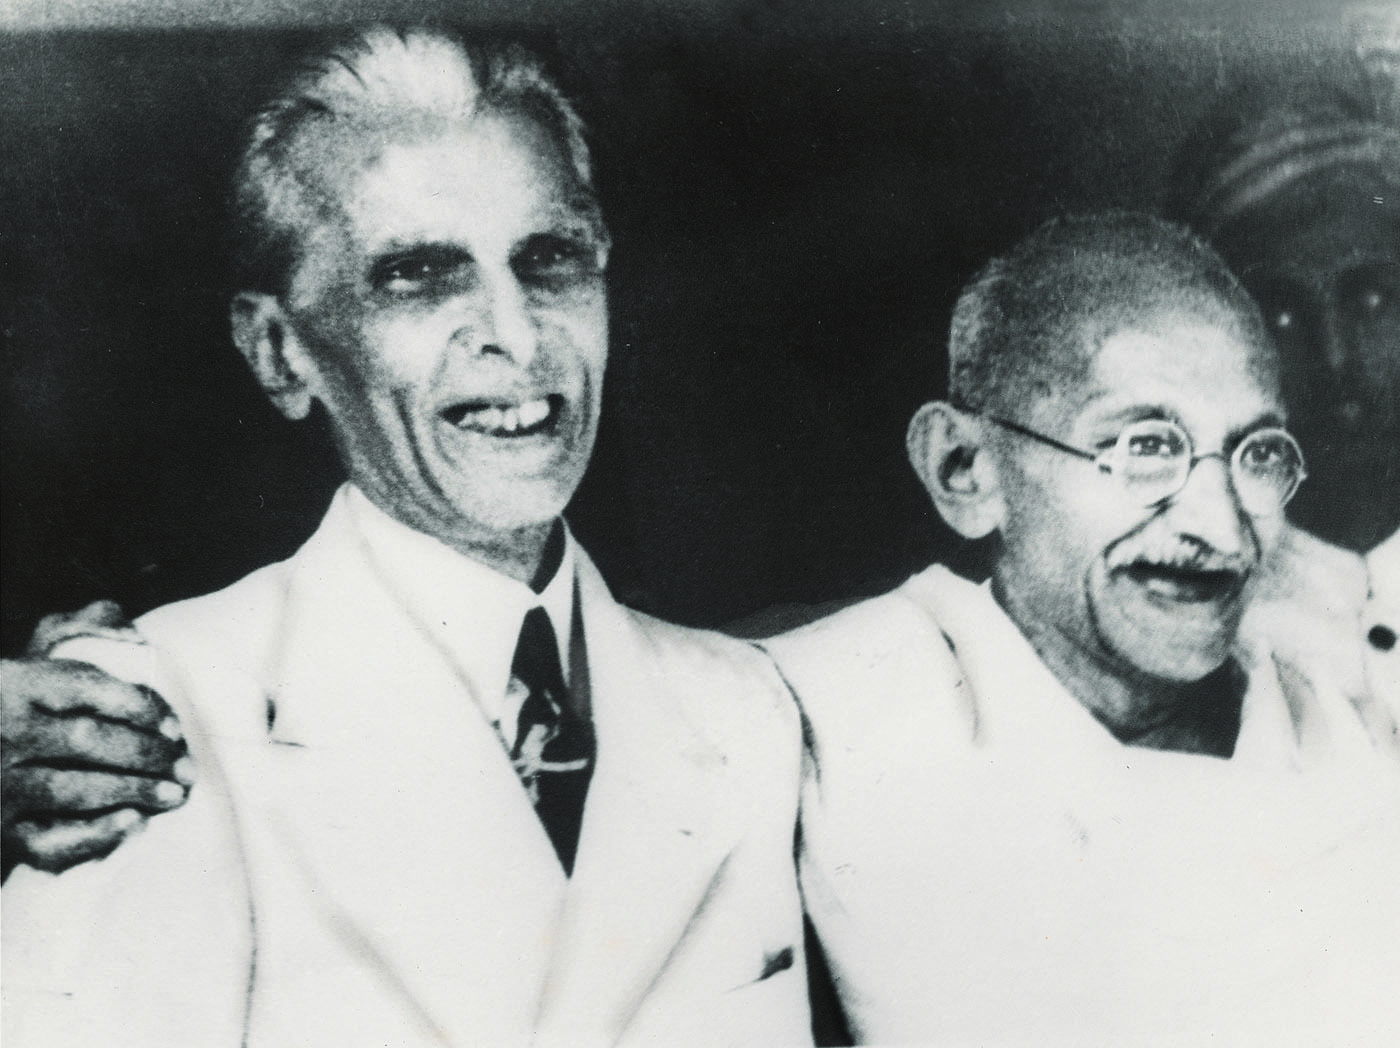 The Quaid-i-Azam, Mohammad Ali Jinnah and Mahatma Gandhi smile during the Jinnah-Gandhi talks. — Courtesy National Archives Islamabad